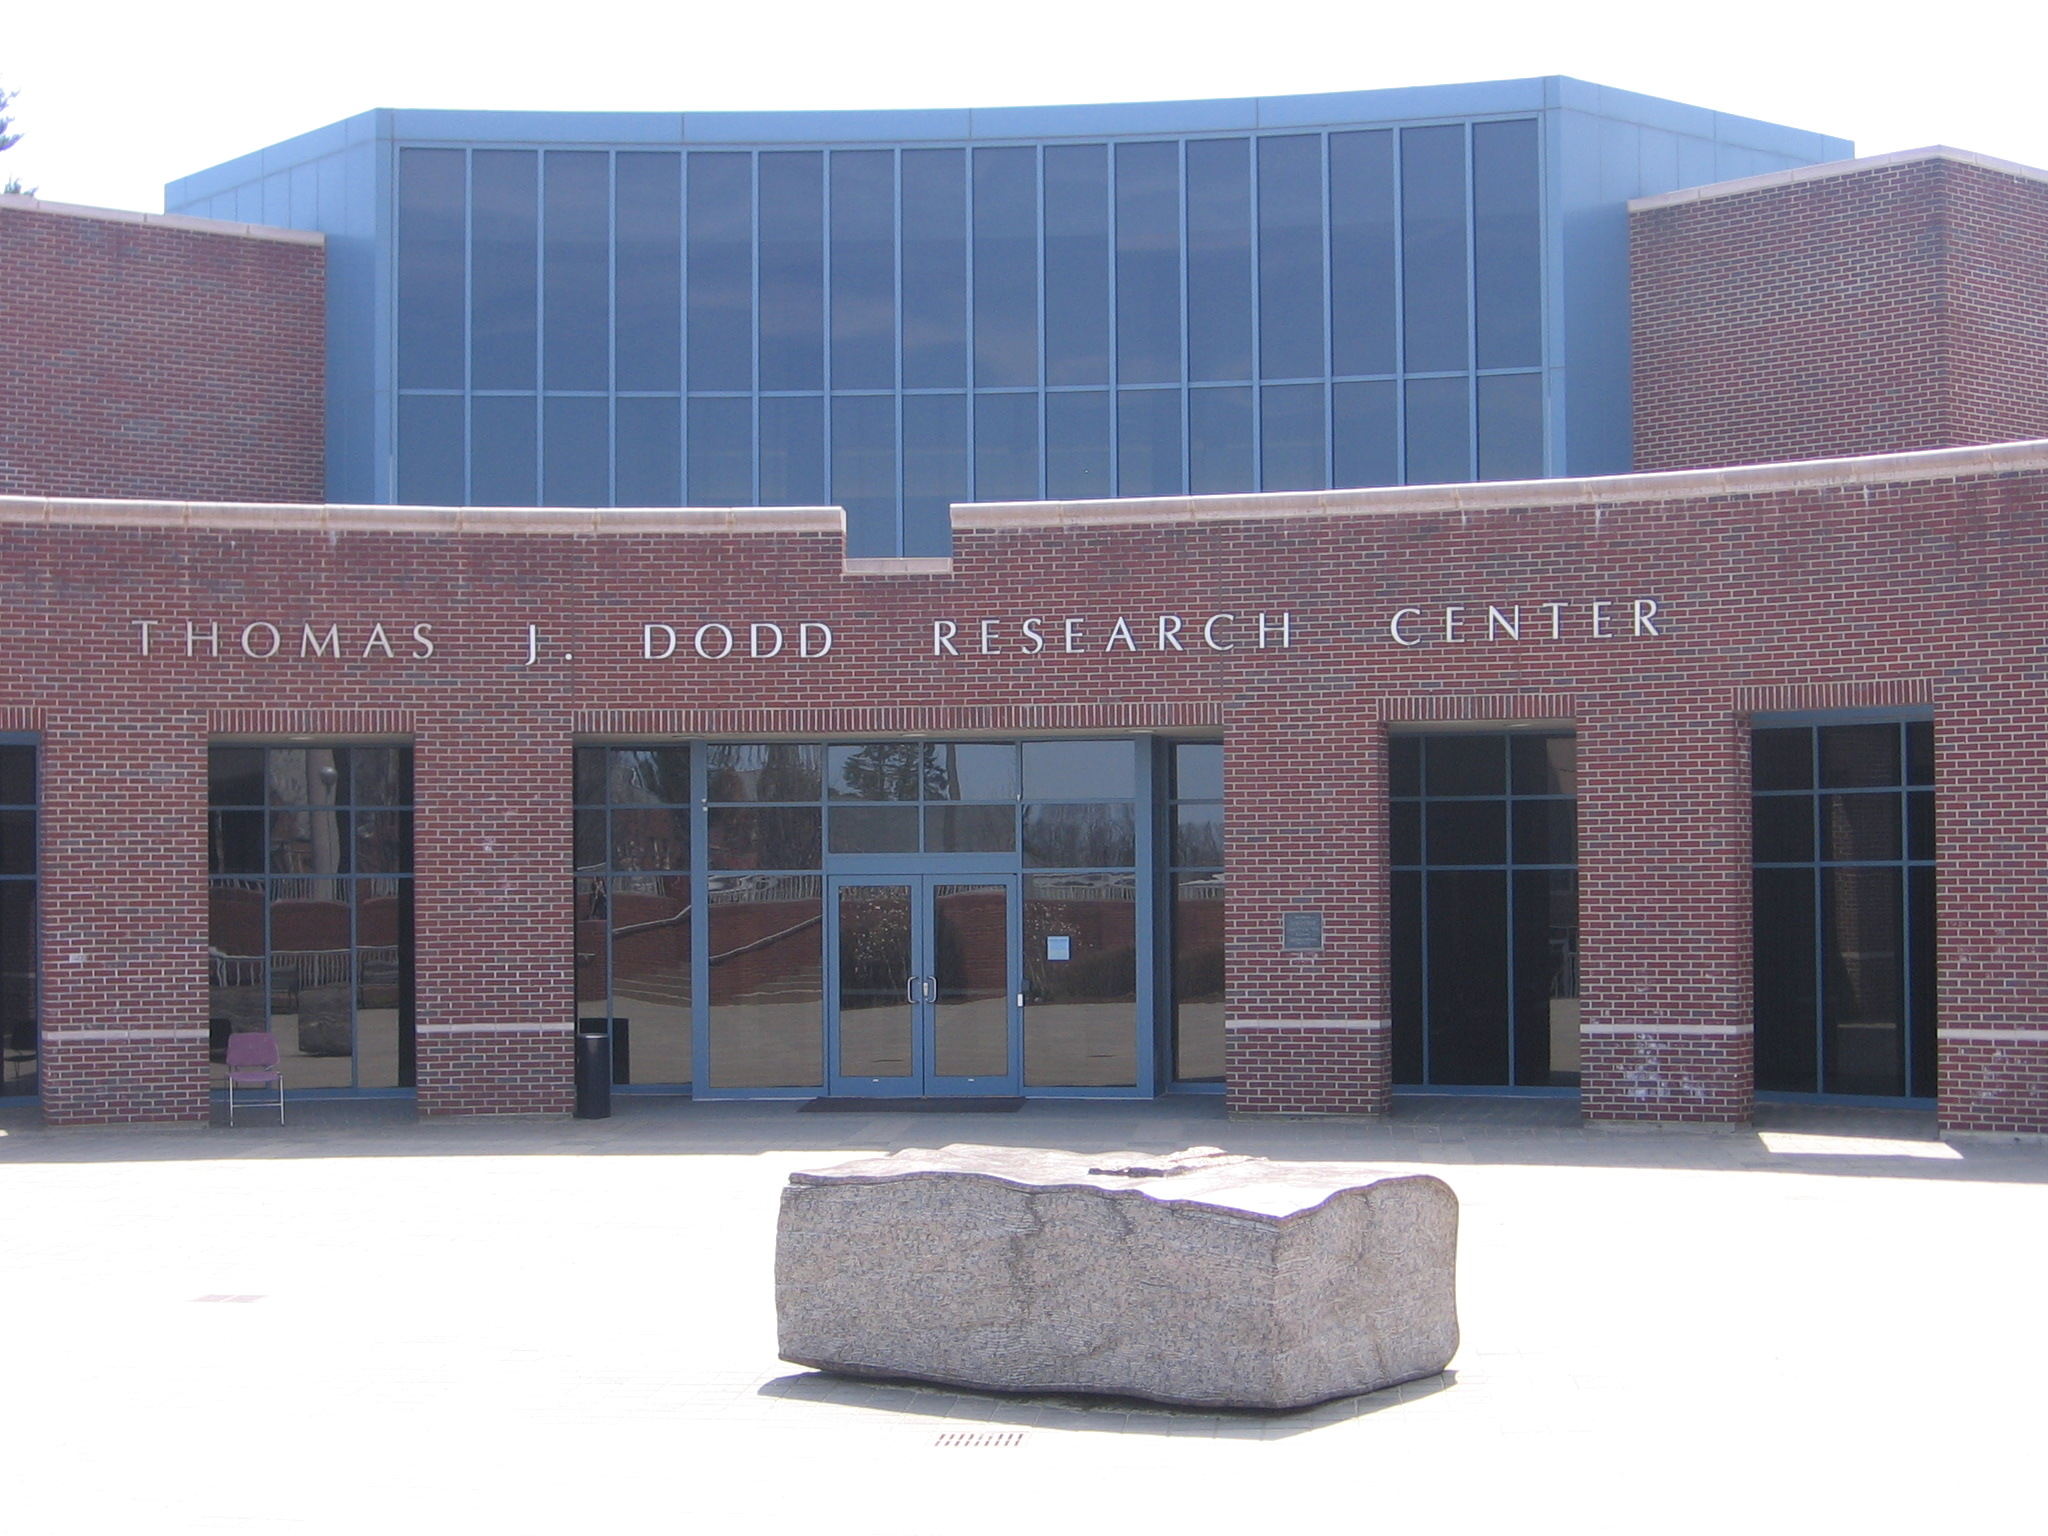 The Thomas J Dodd Research Center